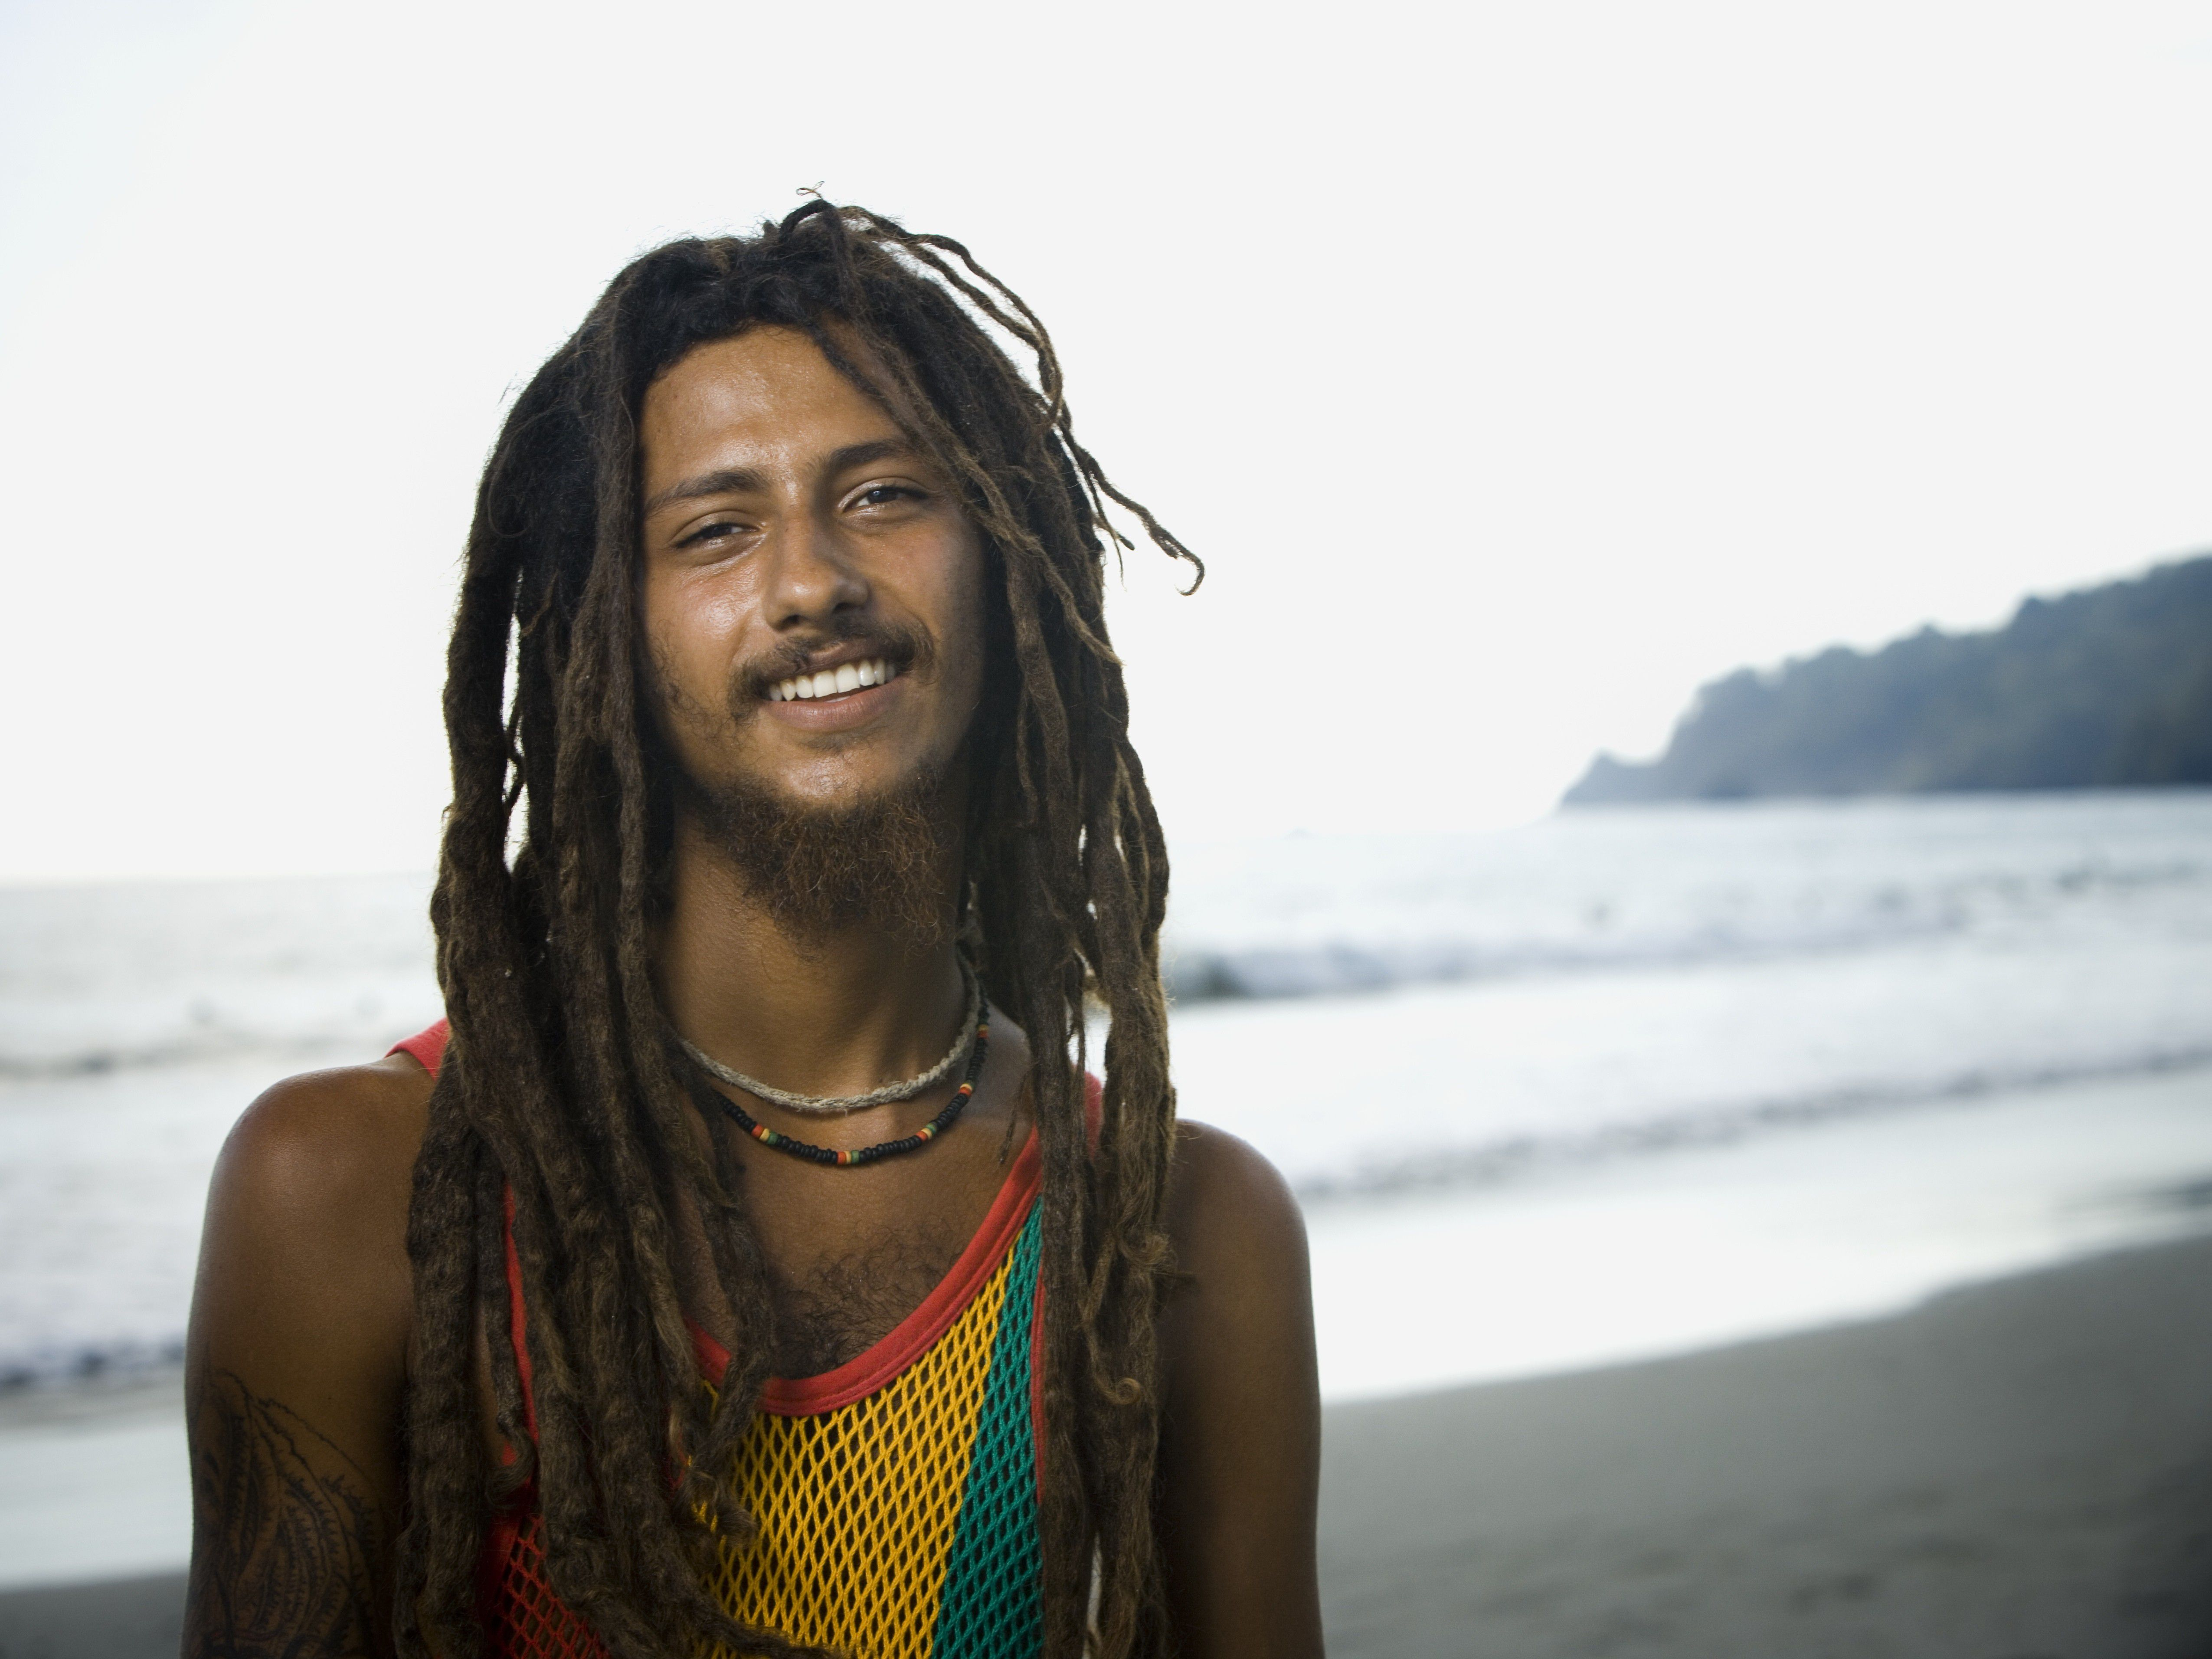 Portrait of a young man smiling on beach.